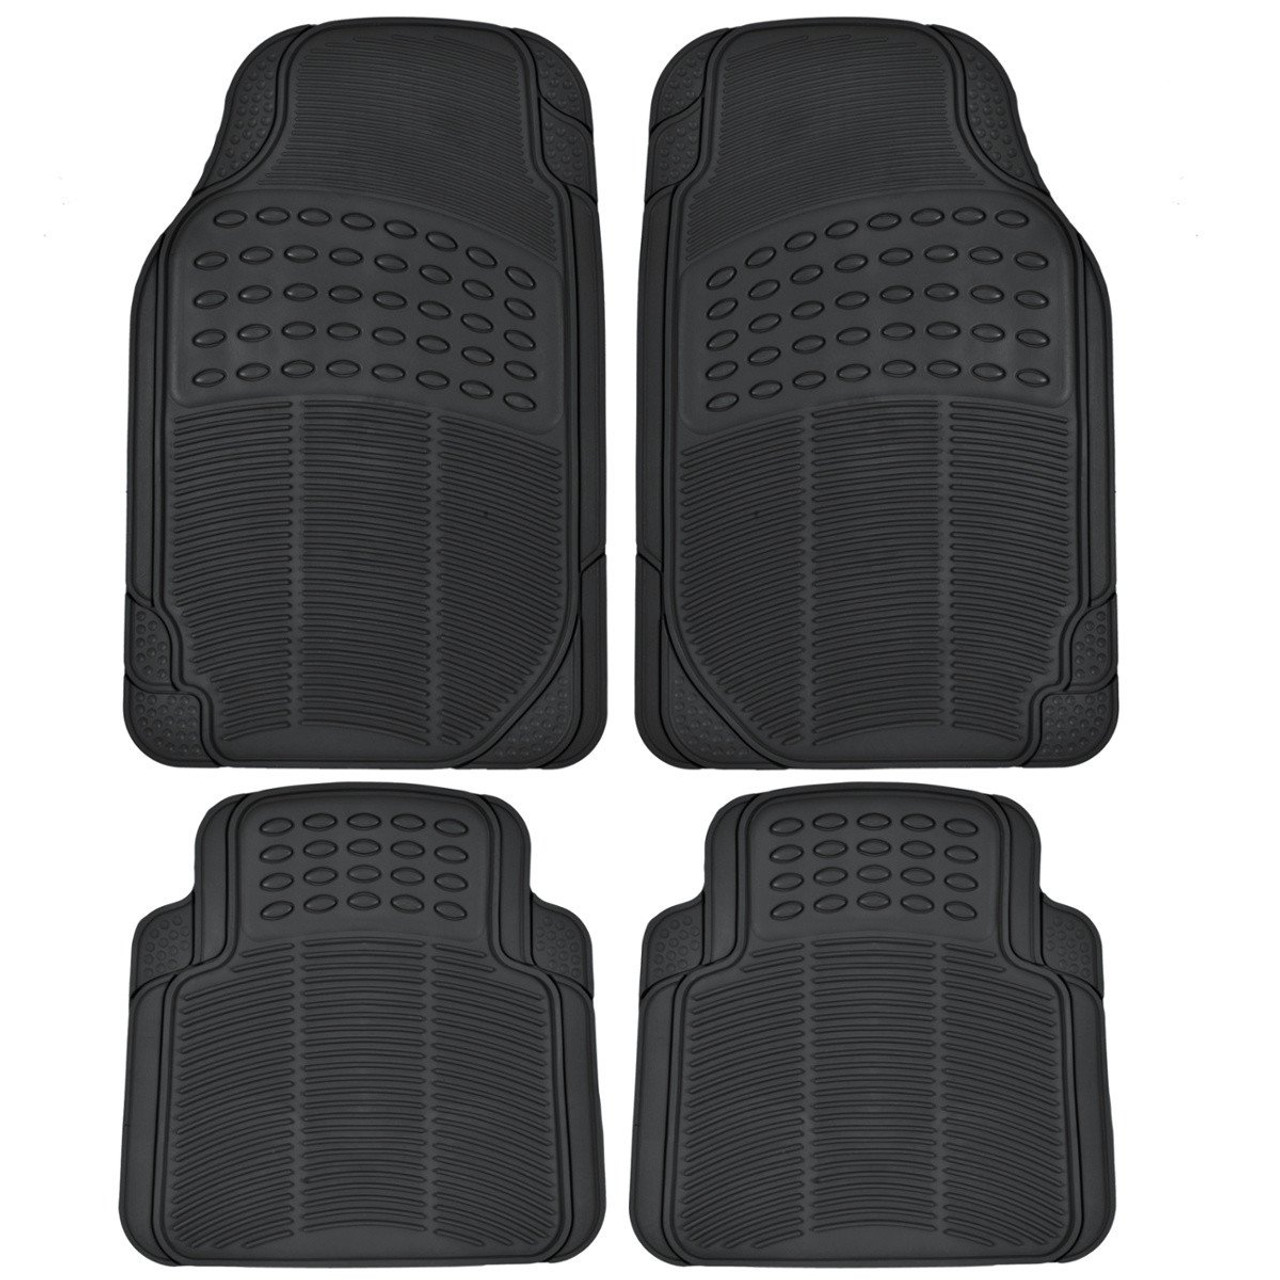 Vanilla Black 2 Piece BDK All Weather Heavy Duty Durable Rubber Rear Only Mats